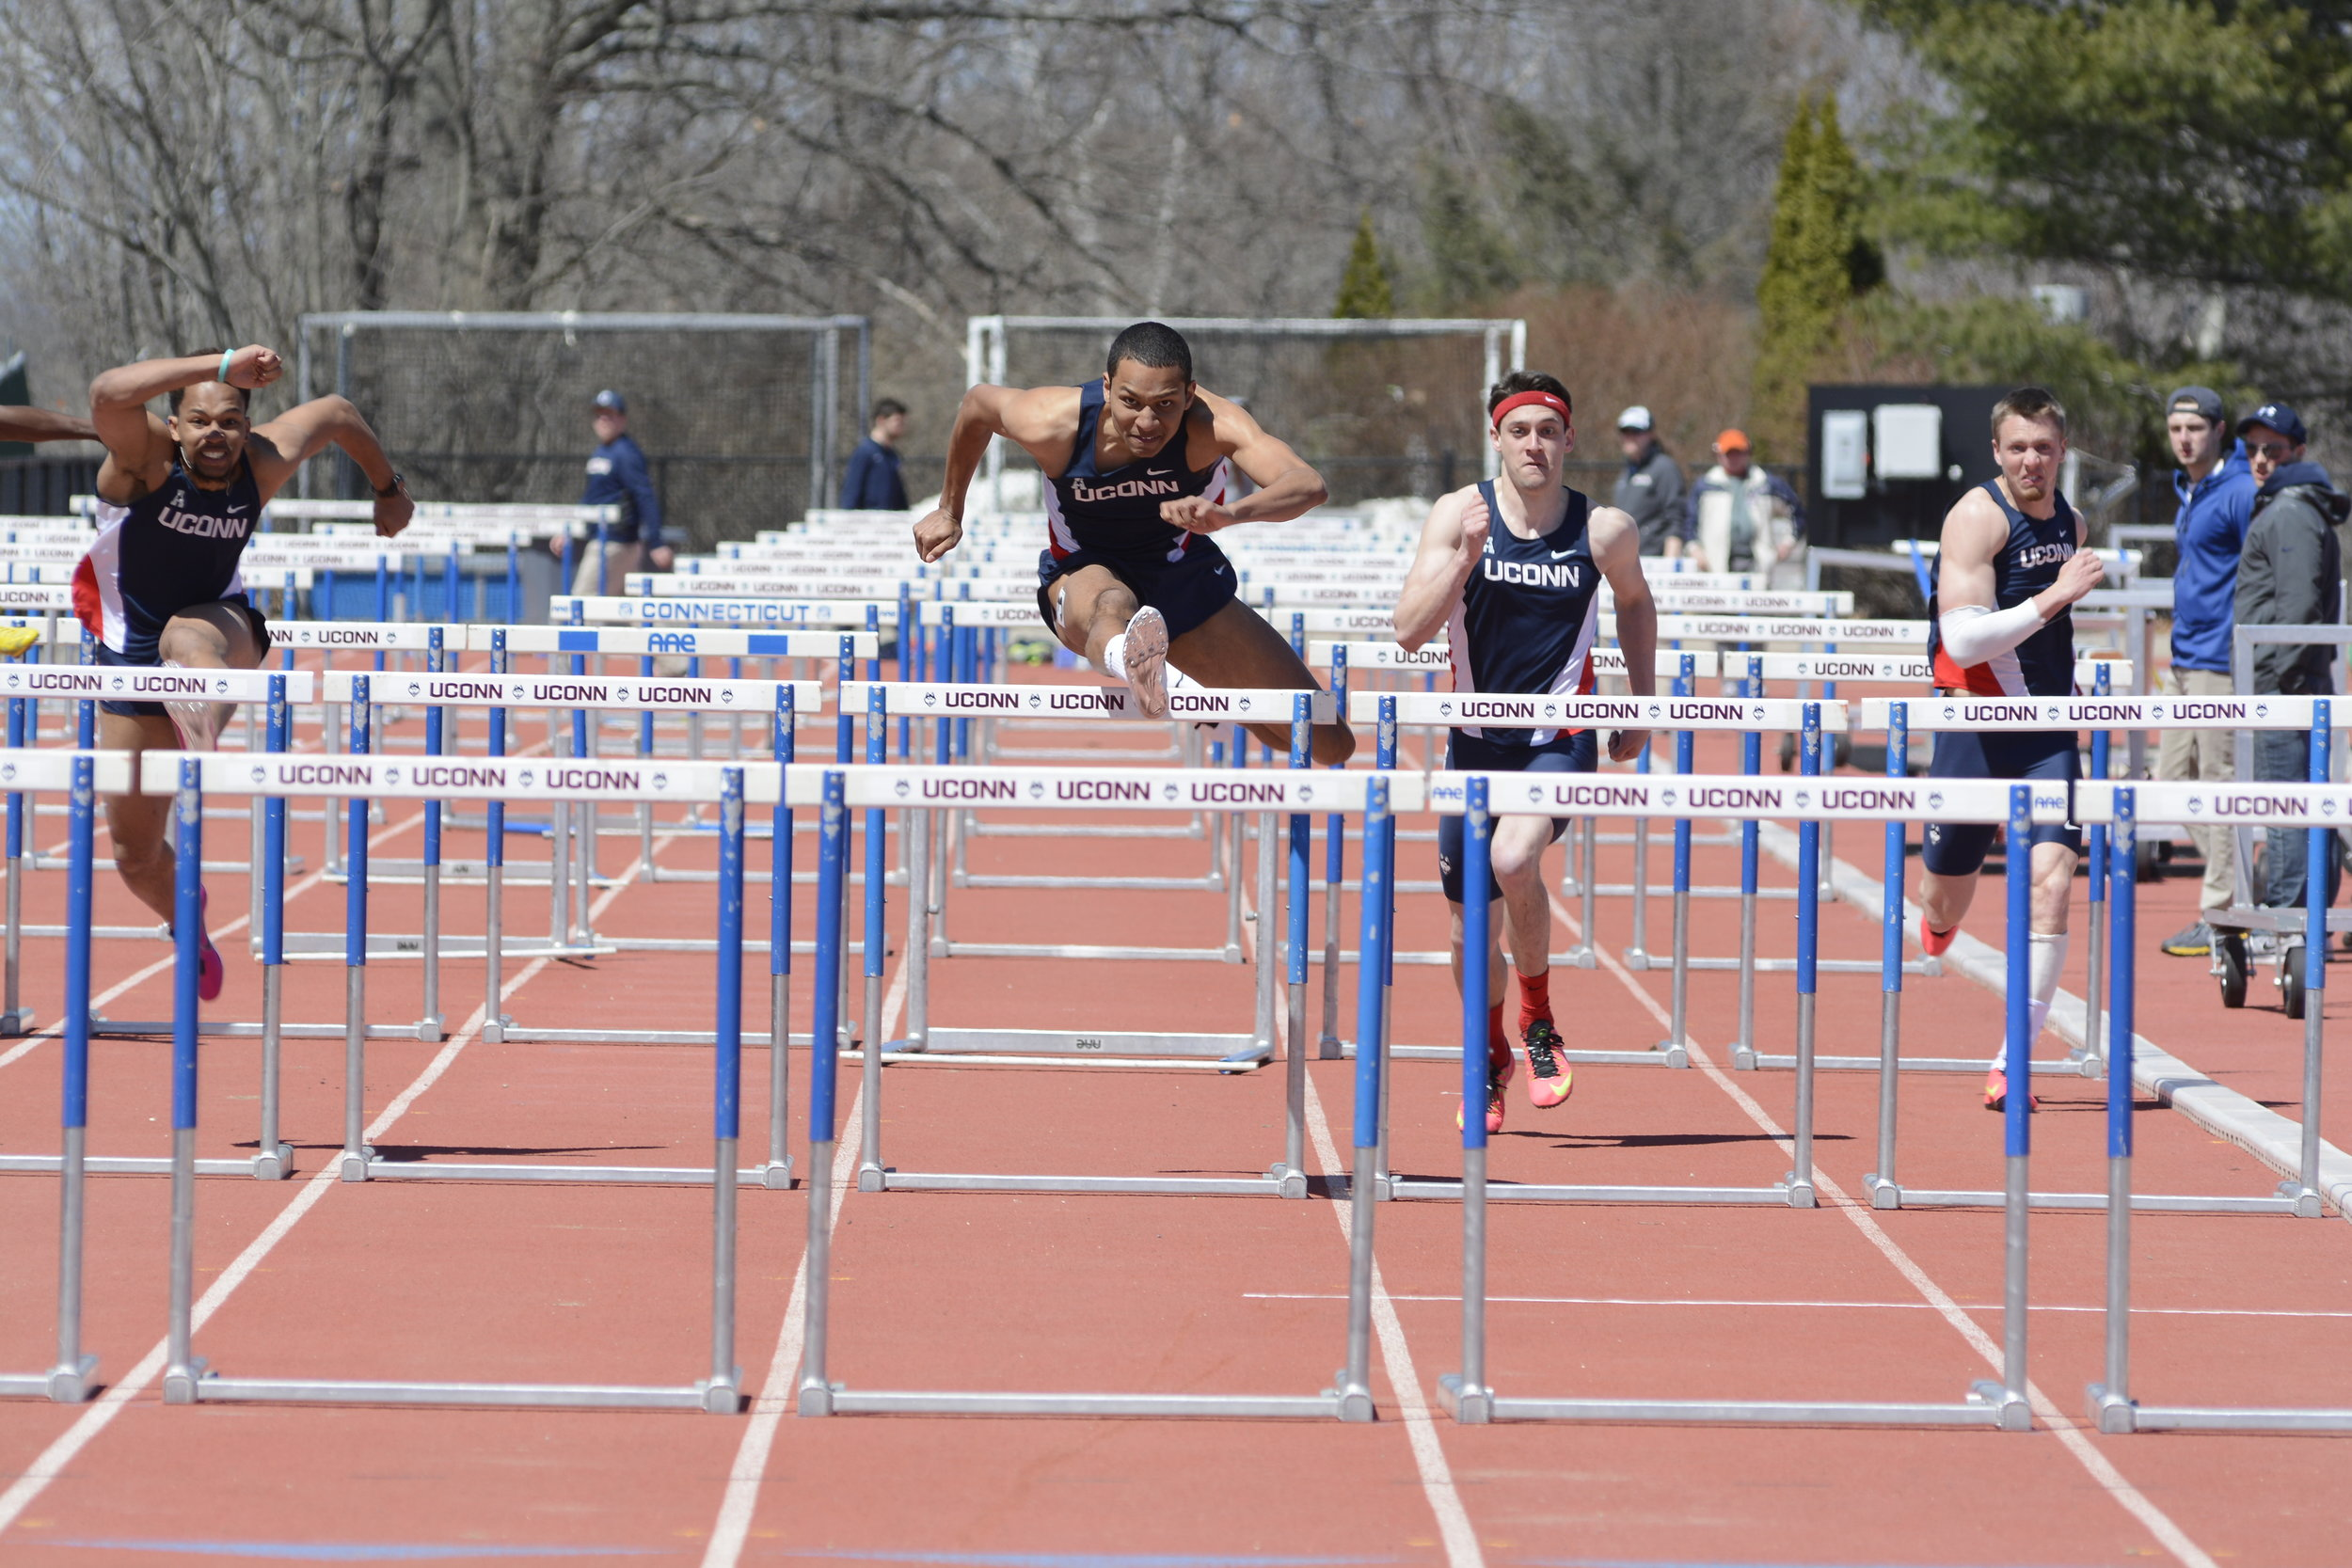 UConn Men's Track and Field. (Photo by Jason jiang/The Daily Campus)